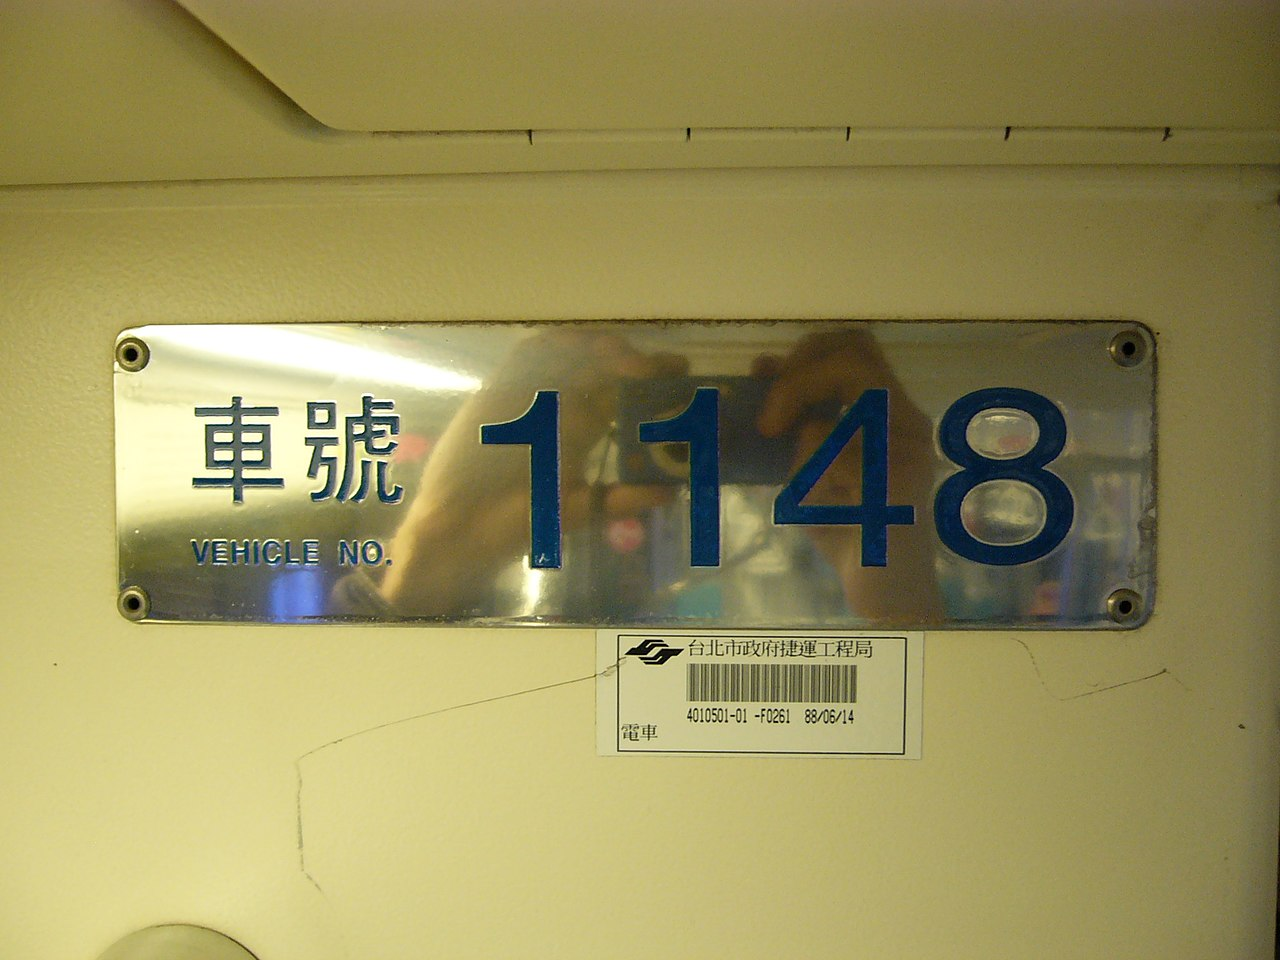 File:Taipei MRT 1148 interior vehicle number plate and TPE-DORTS barcode  tag.jpg